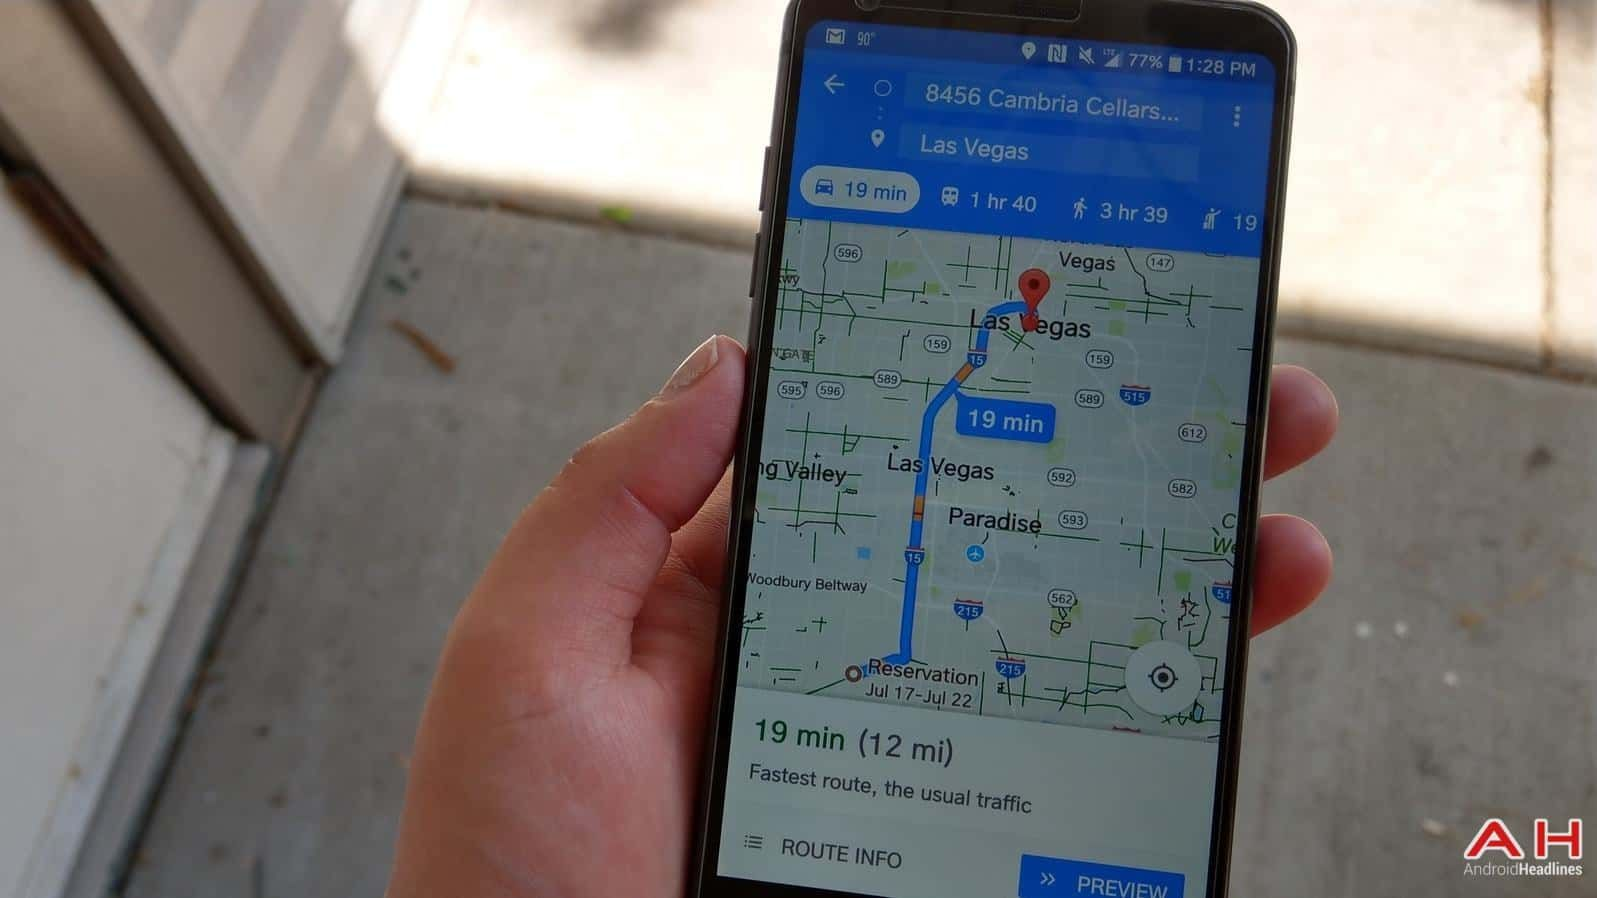 Google Maps Still Years Ahead Of Apple Maps | Android | Data ... on google road maps, google safety map, google running map, google information map, google solar map, google flight tracker map, google contacts map, google location finder map, google maps on phone, google navigation map, google analytics map, google business map, google maps map, google positioning map, google camping map, google mobile map, google history map, google mapping map, google search map, google home map,